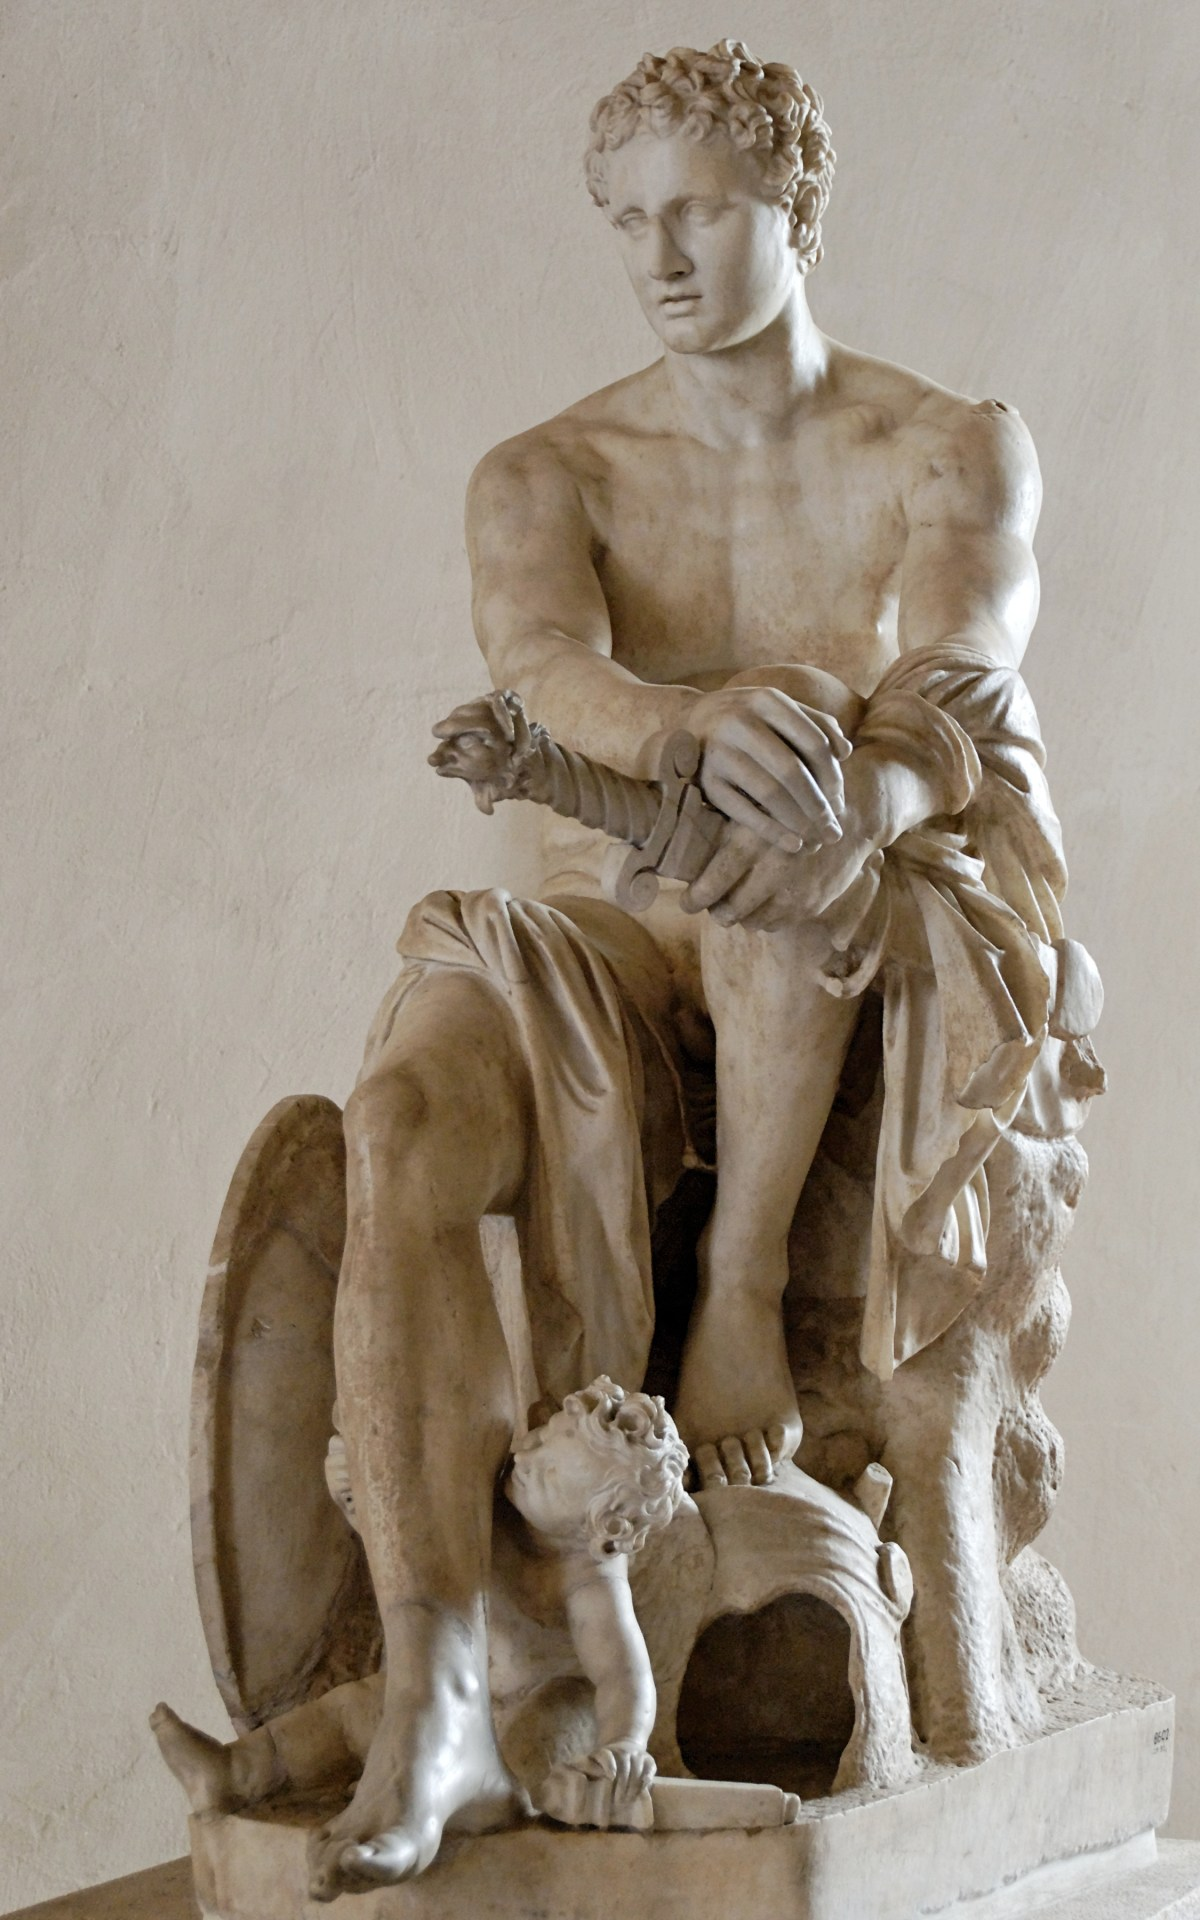 Ares The Most Pathetic And Impotent God In The Olympian Pantheon Tales Of Times Forgotten